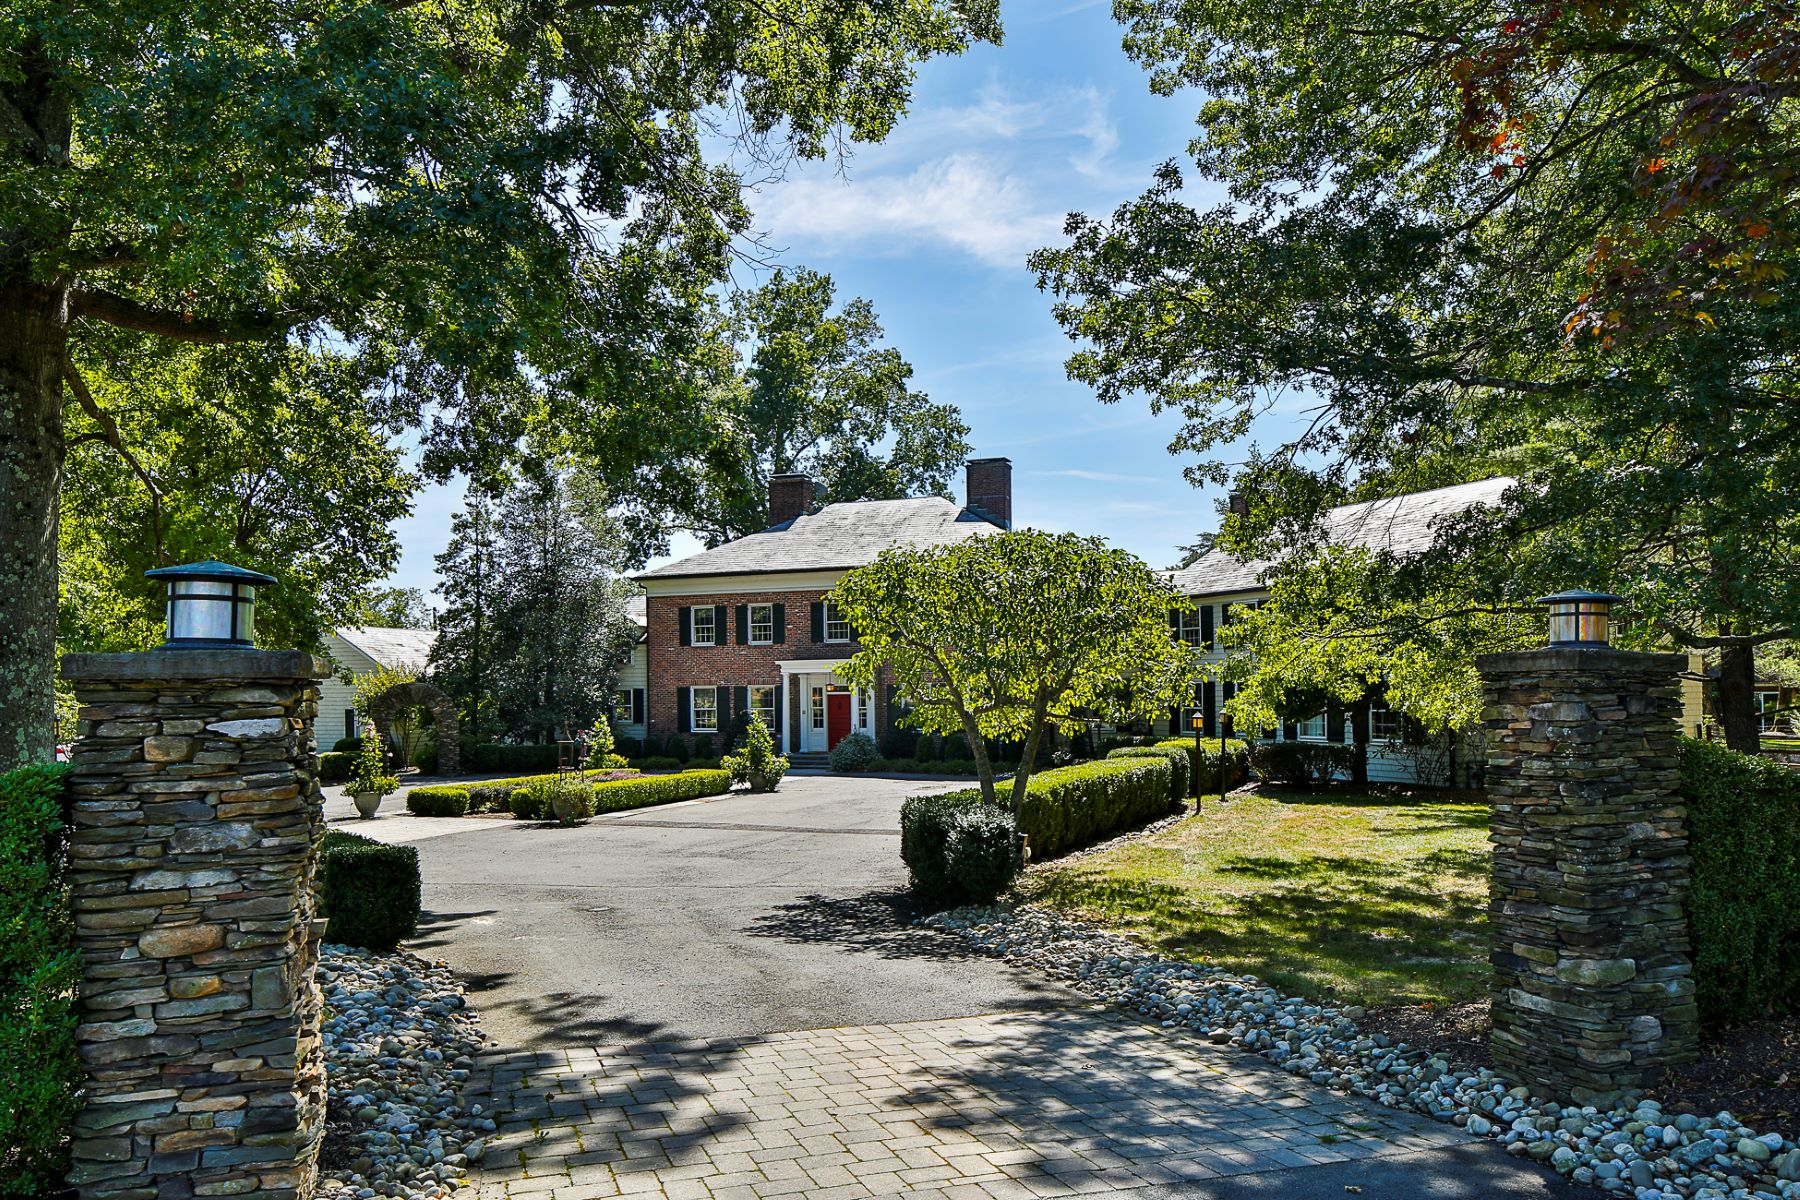 Casa Unifamiliar por un Venta en Hidden Princeton Estate Is a World Unto Itself 214 Cherry Hill Road Princeton, Nueva Jersey 08540 Estados Unidos